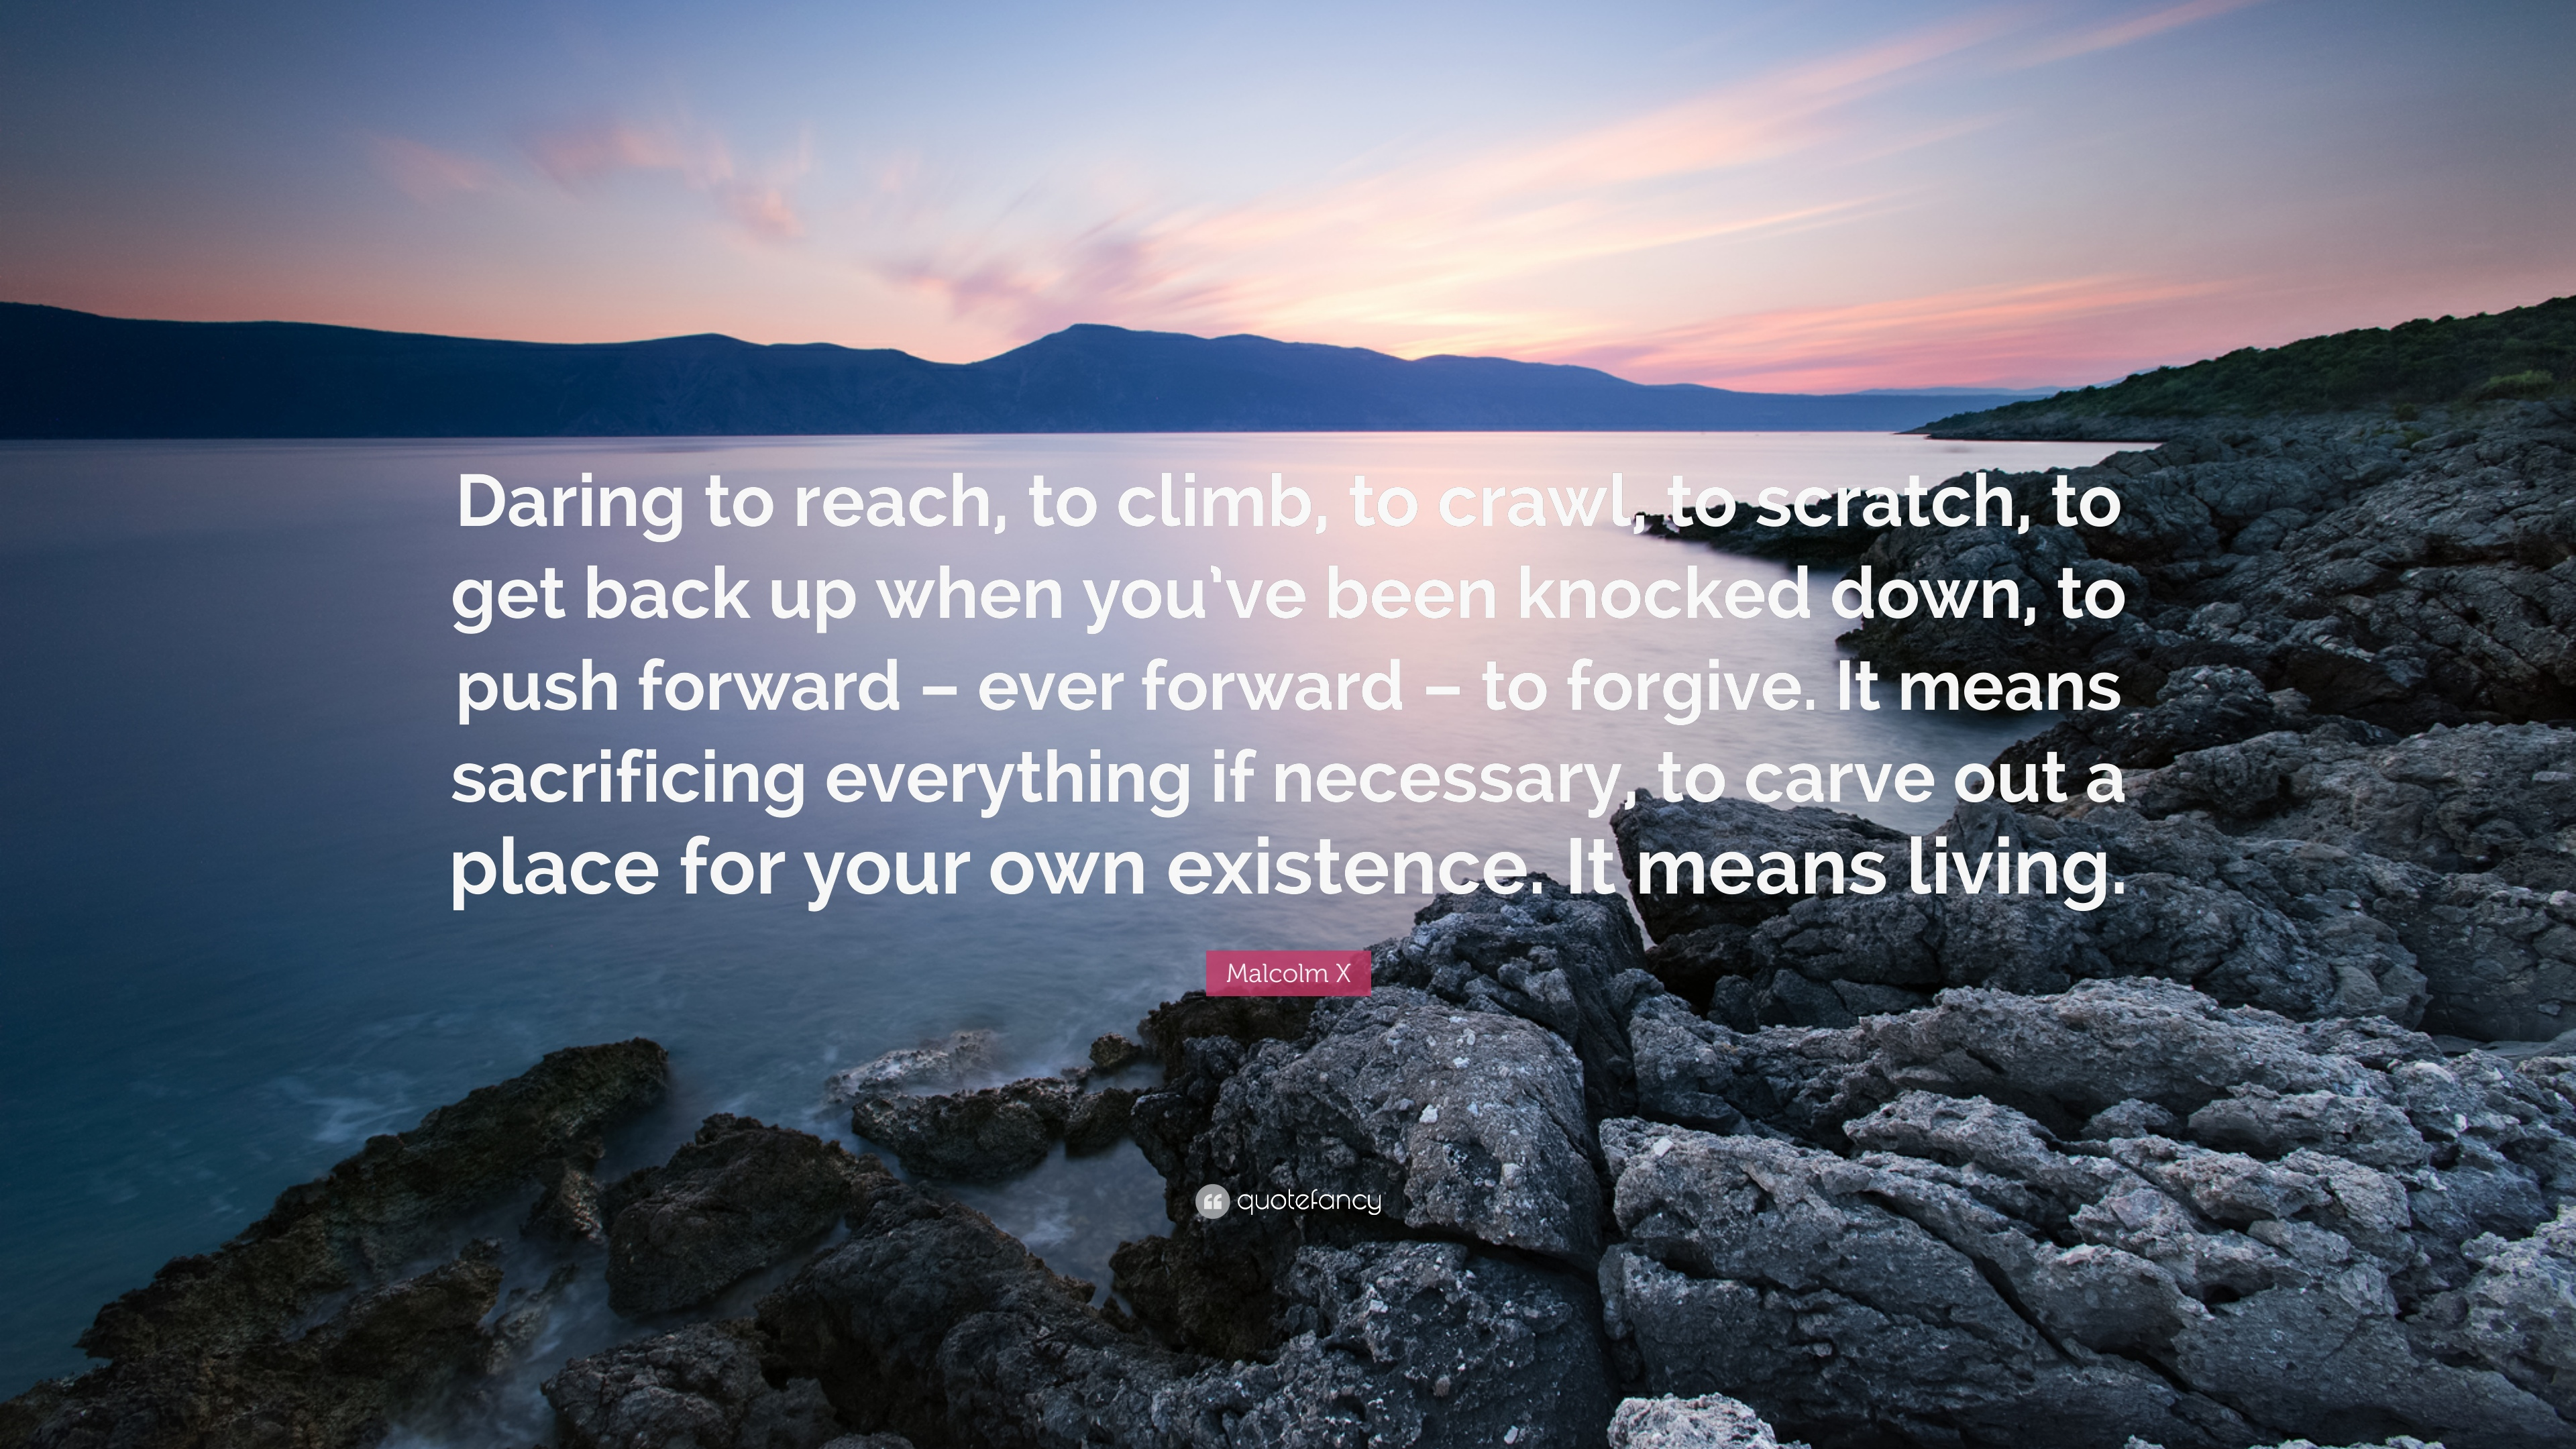 Malcolm X Quote Daring To Reach To Climb To Crawl To Scratch